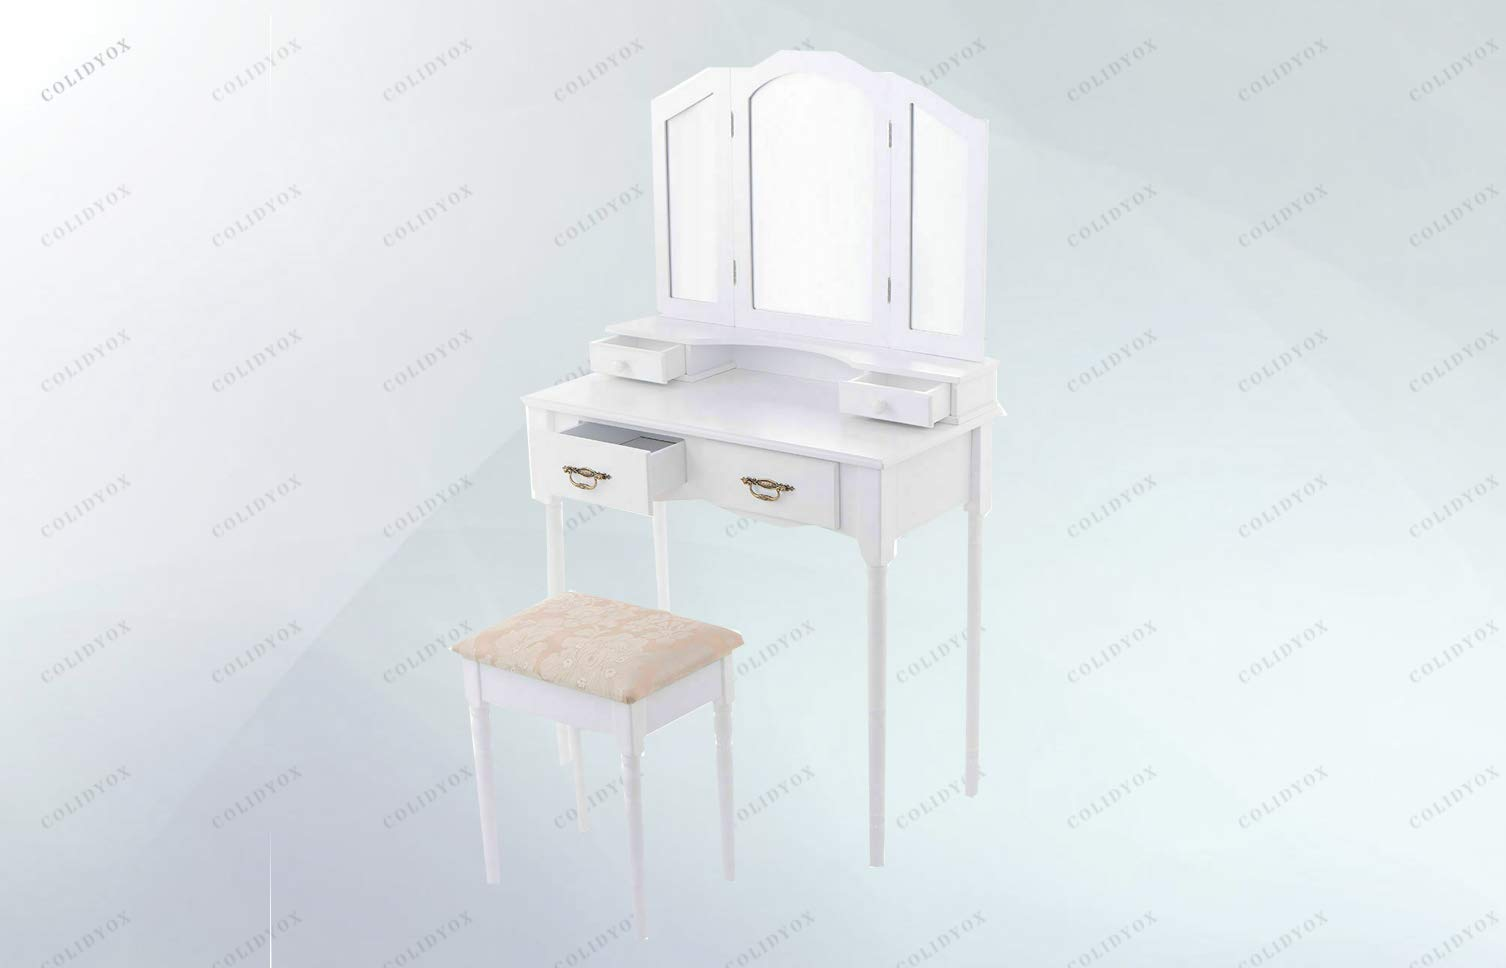 COLIDYOX___White Vanity Makeup Table and Stool Set,Beautiful and Traditional Style,Made of Thick MDF Panel and Wood Leg,Dressing Furniture Set is Sturdy and Durable Enough to Serve You a Long time